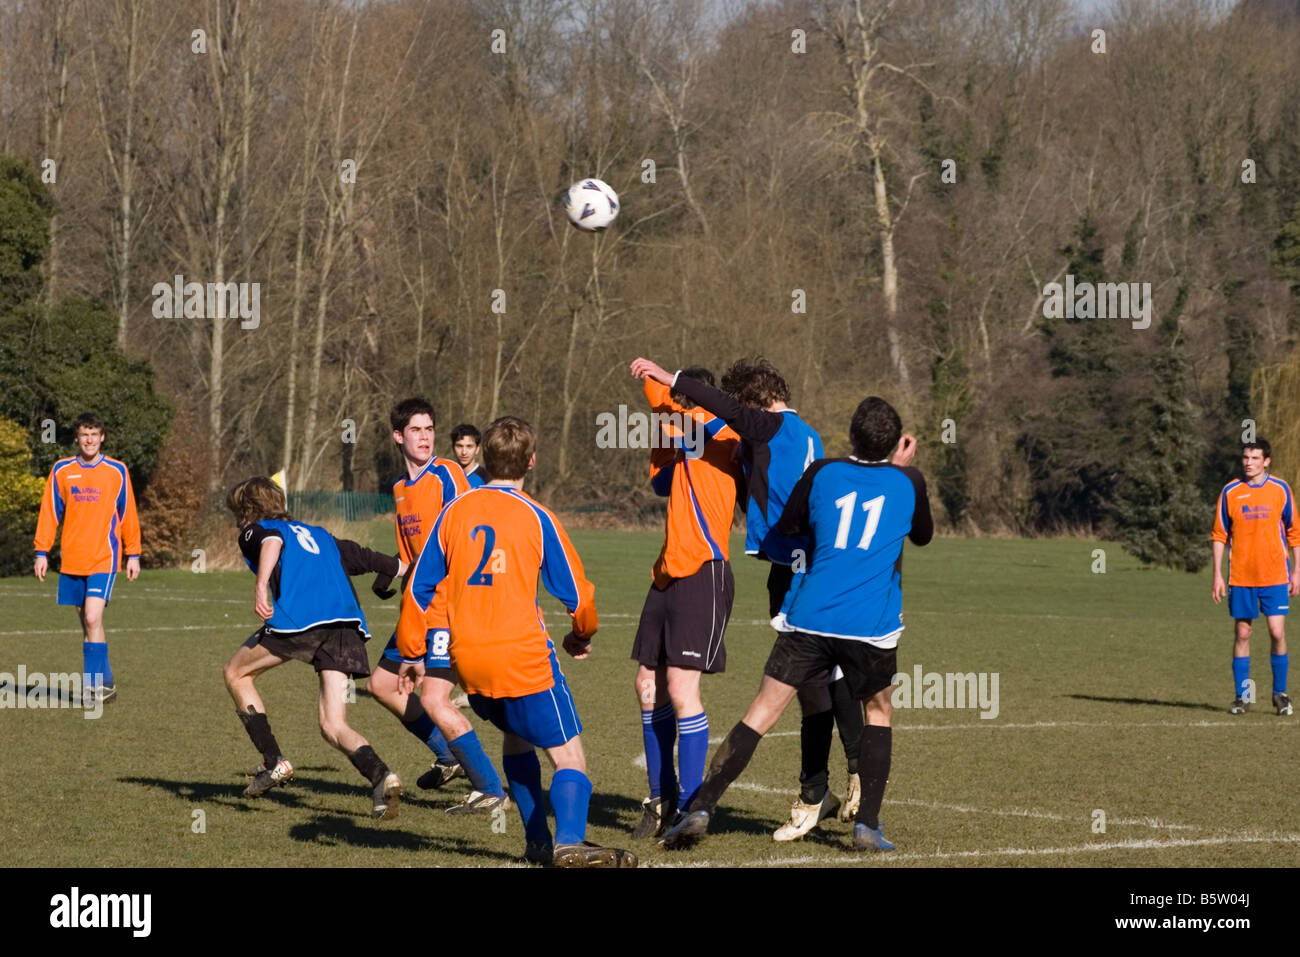 Amateur 'sunday league' Football Match Players Challenging For The Ball - Stock Image